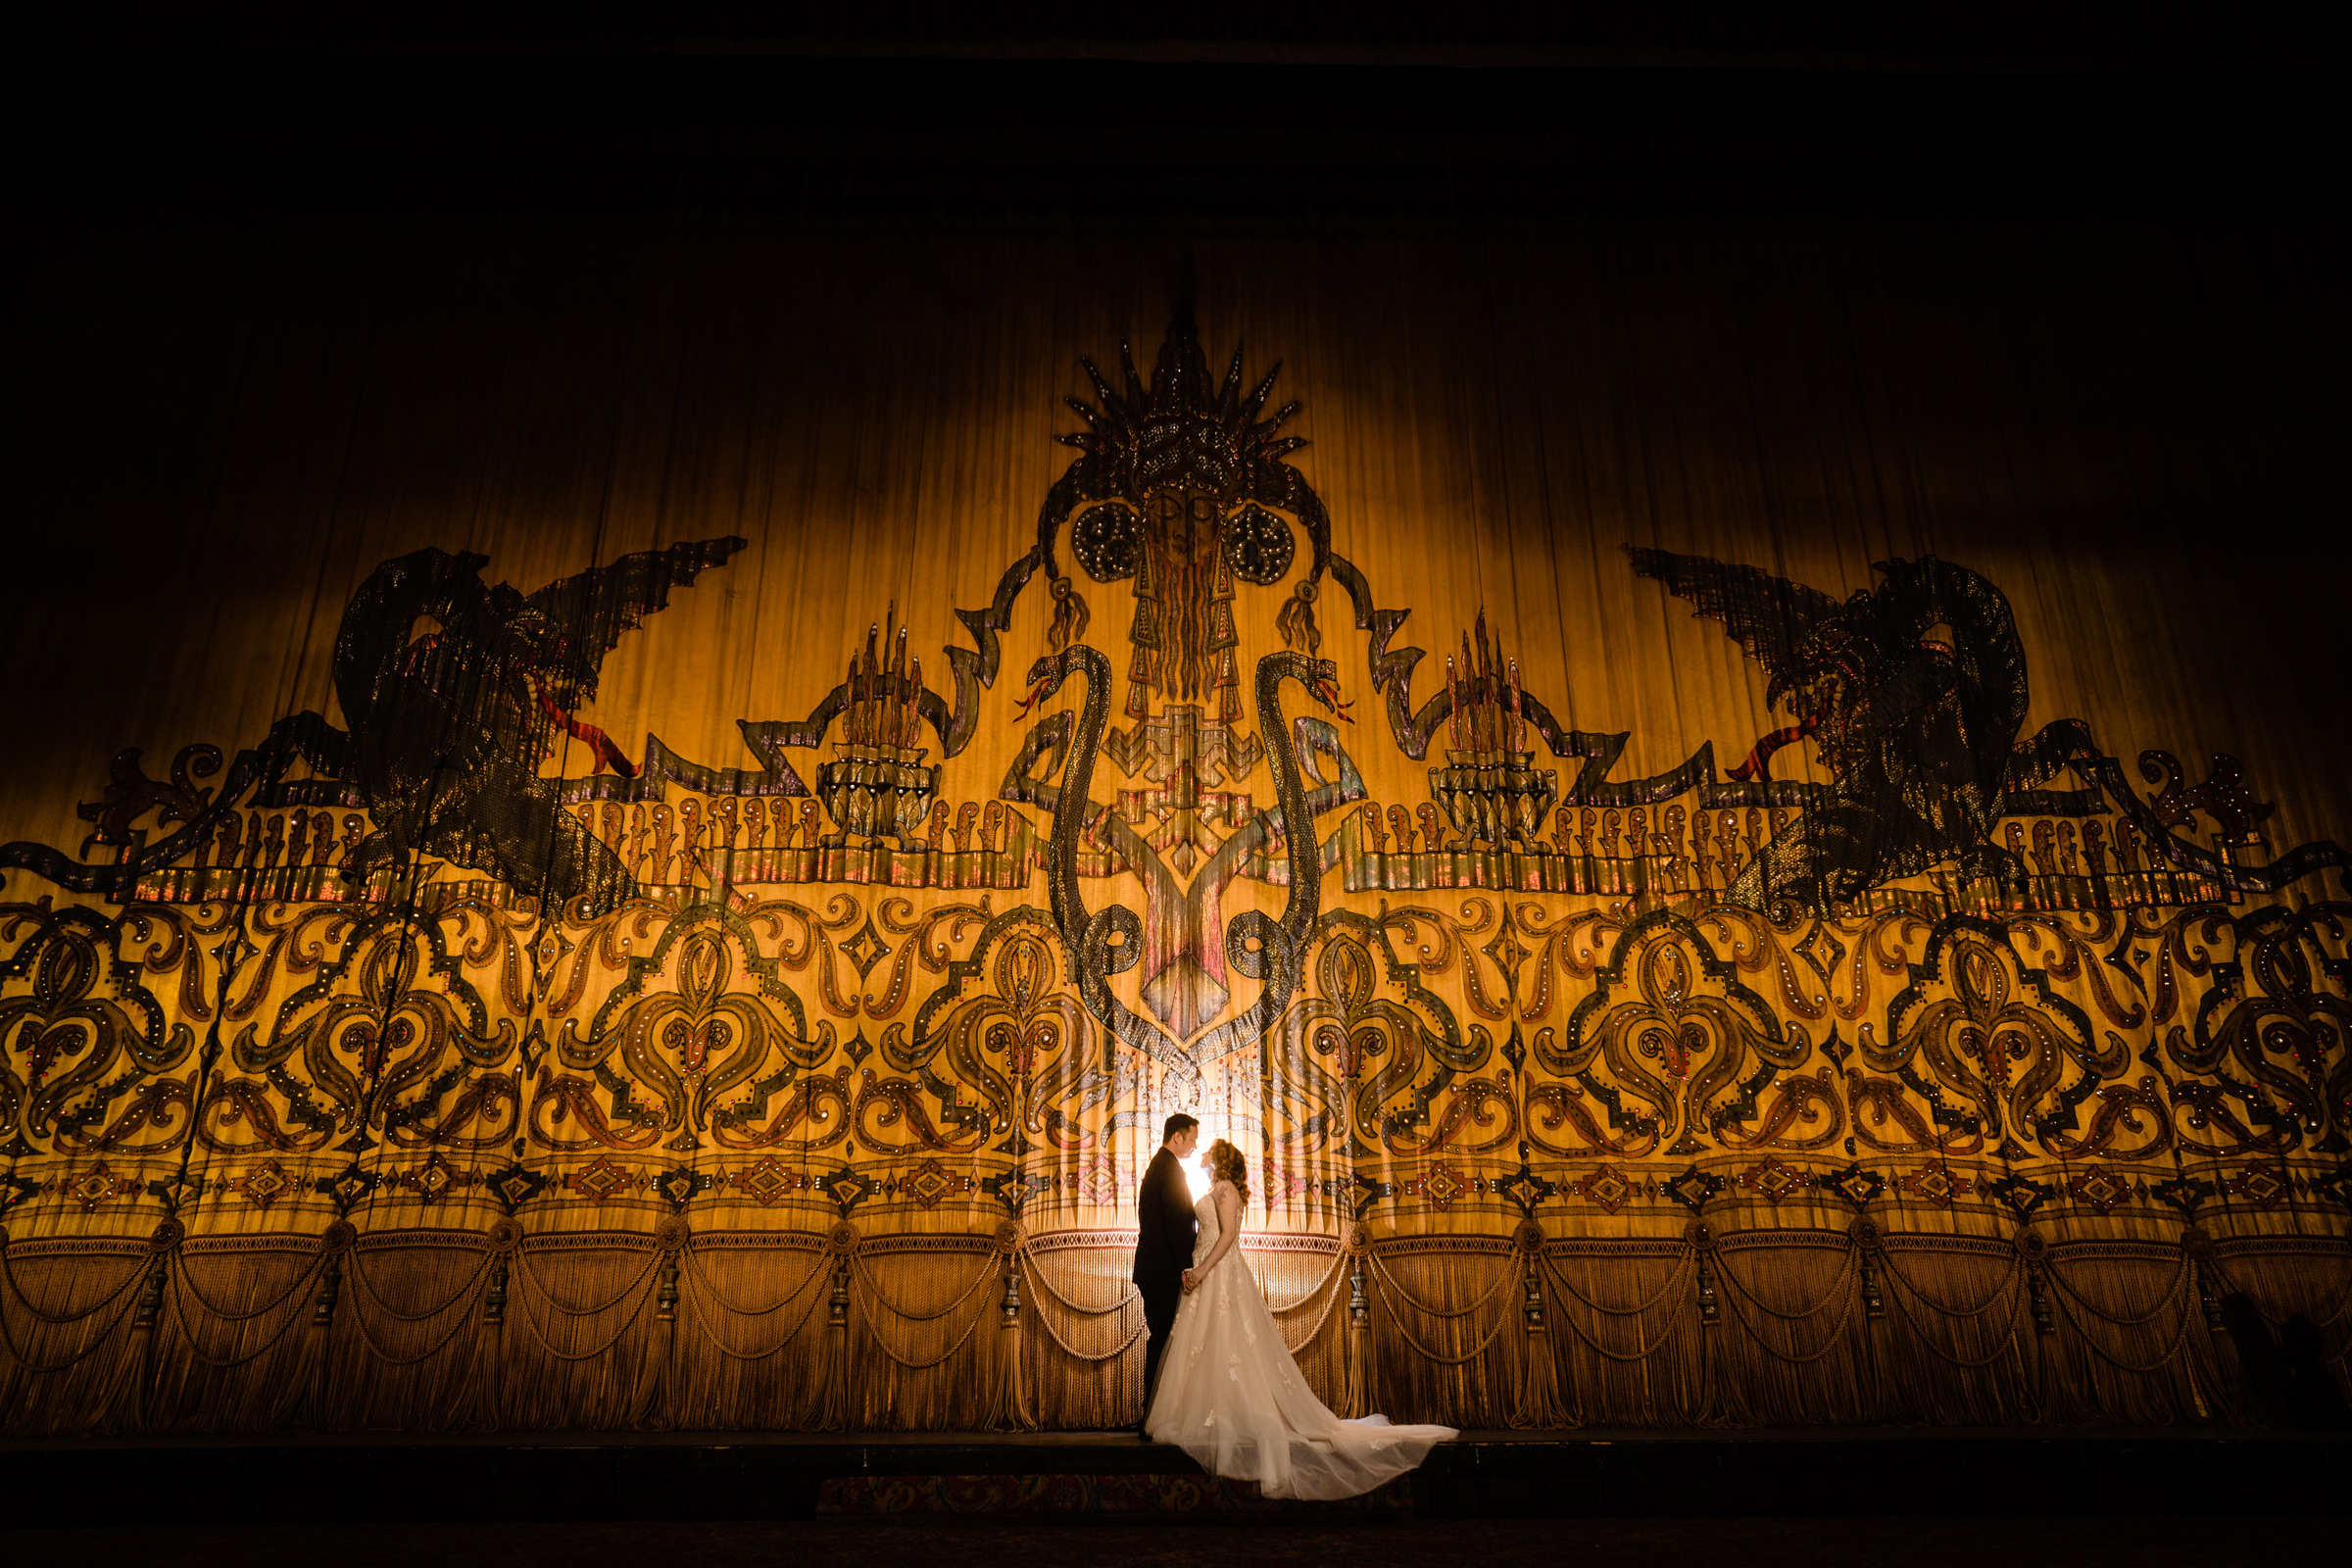 couple-in-spotlight-against-theater-curtain-vinson-images